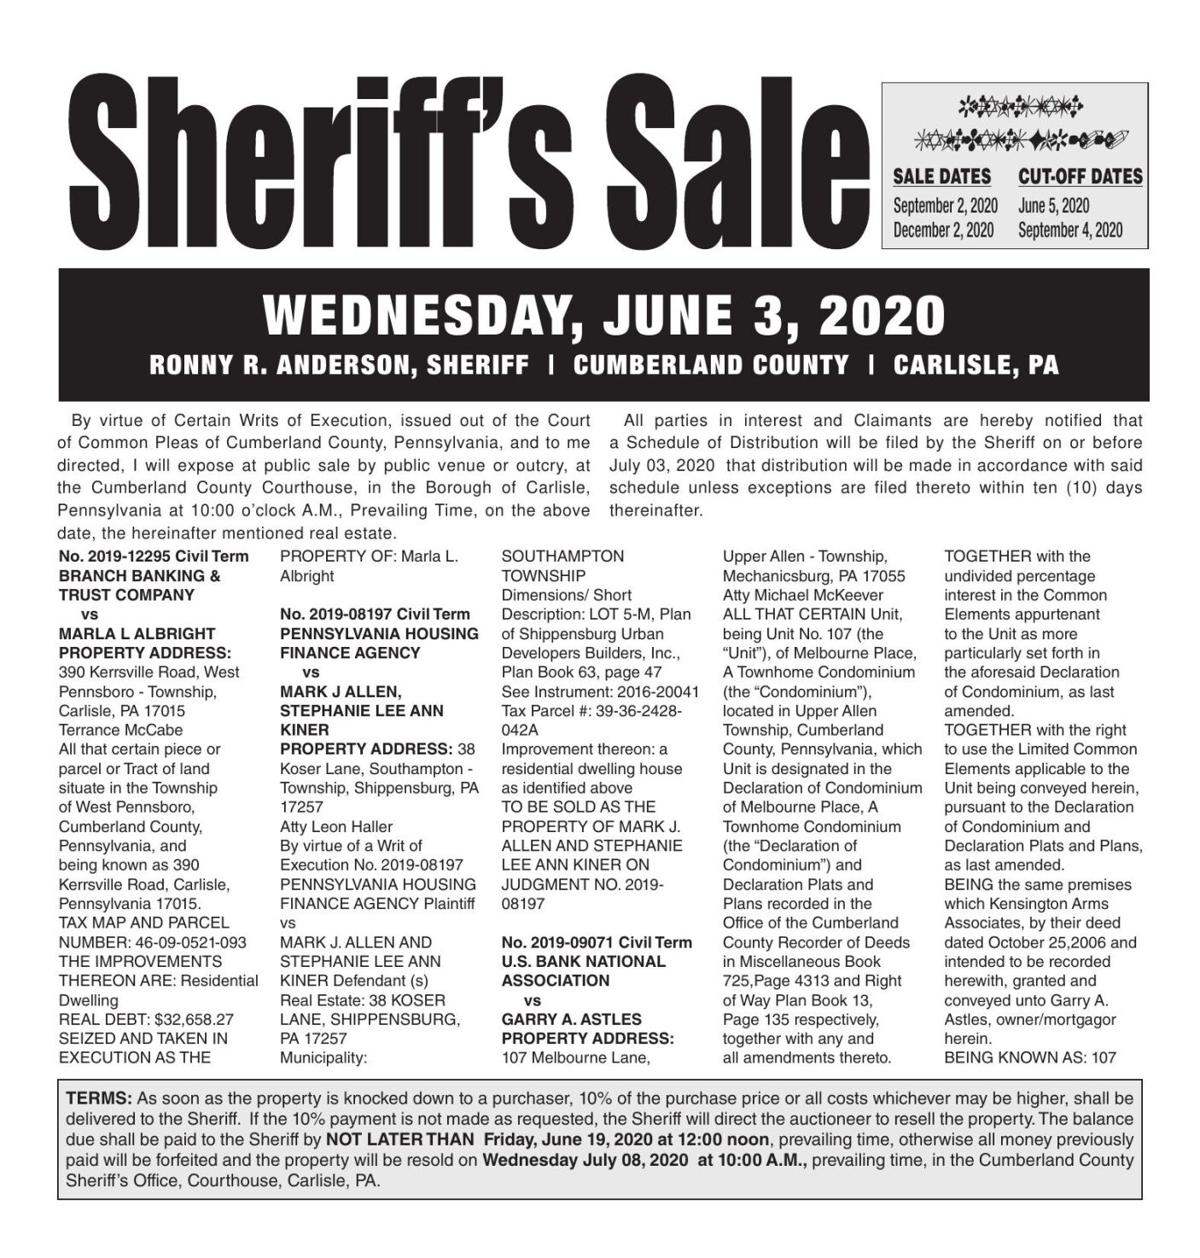 Real Estate Sheriff Sale Notice